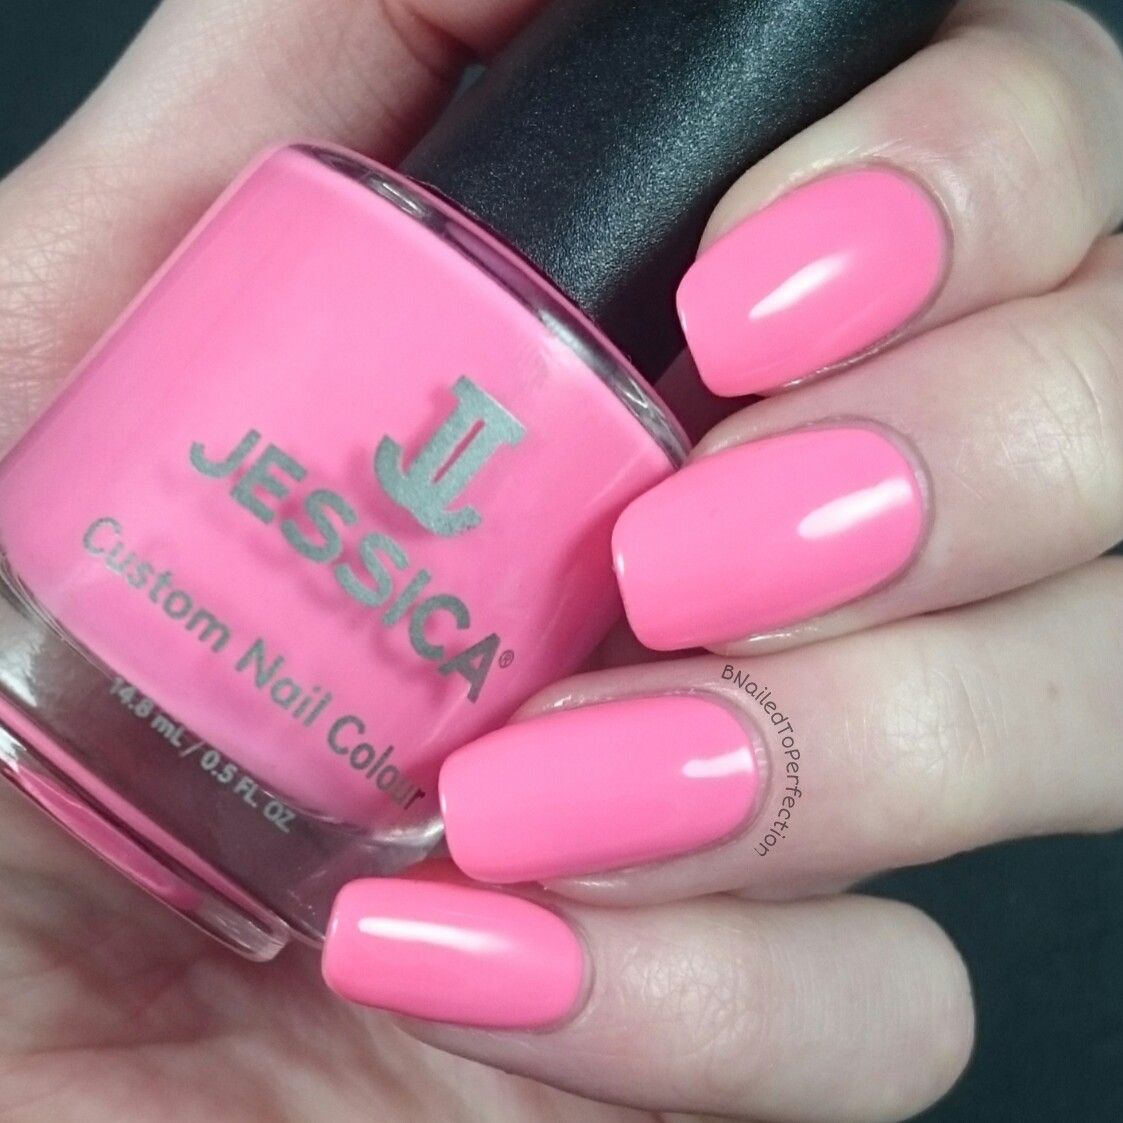 Jessica Custom Colour - Pop Princess | misanails | Pinterest ...